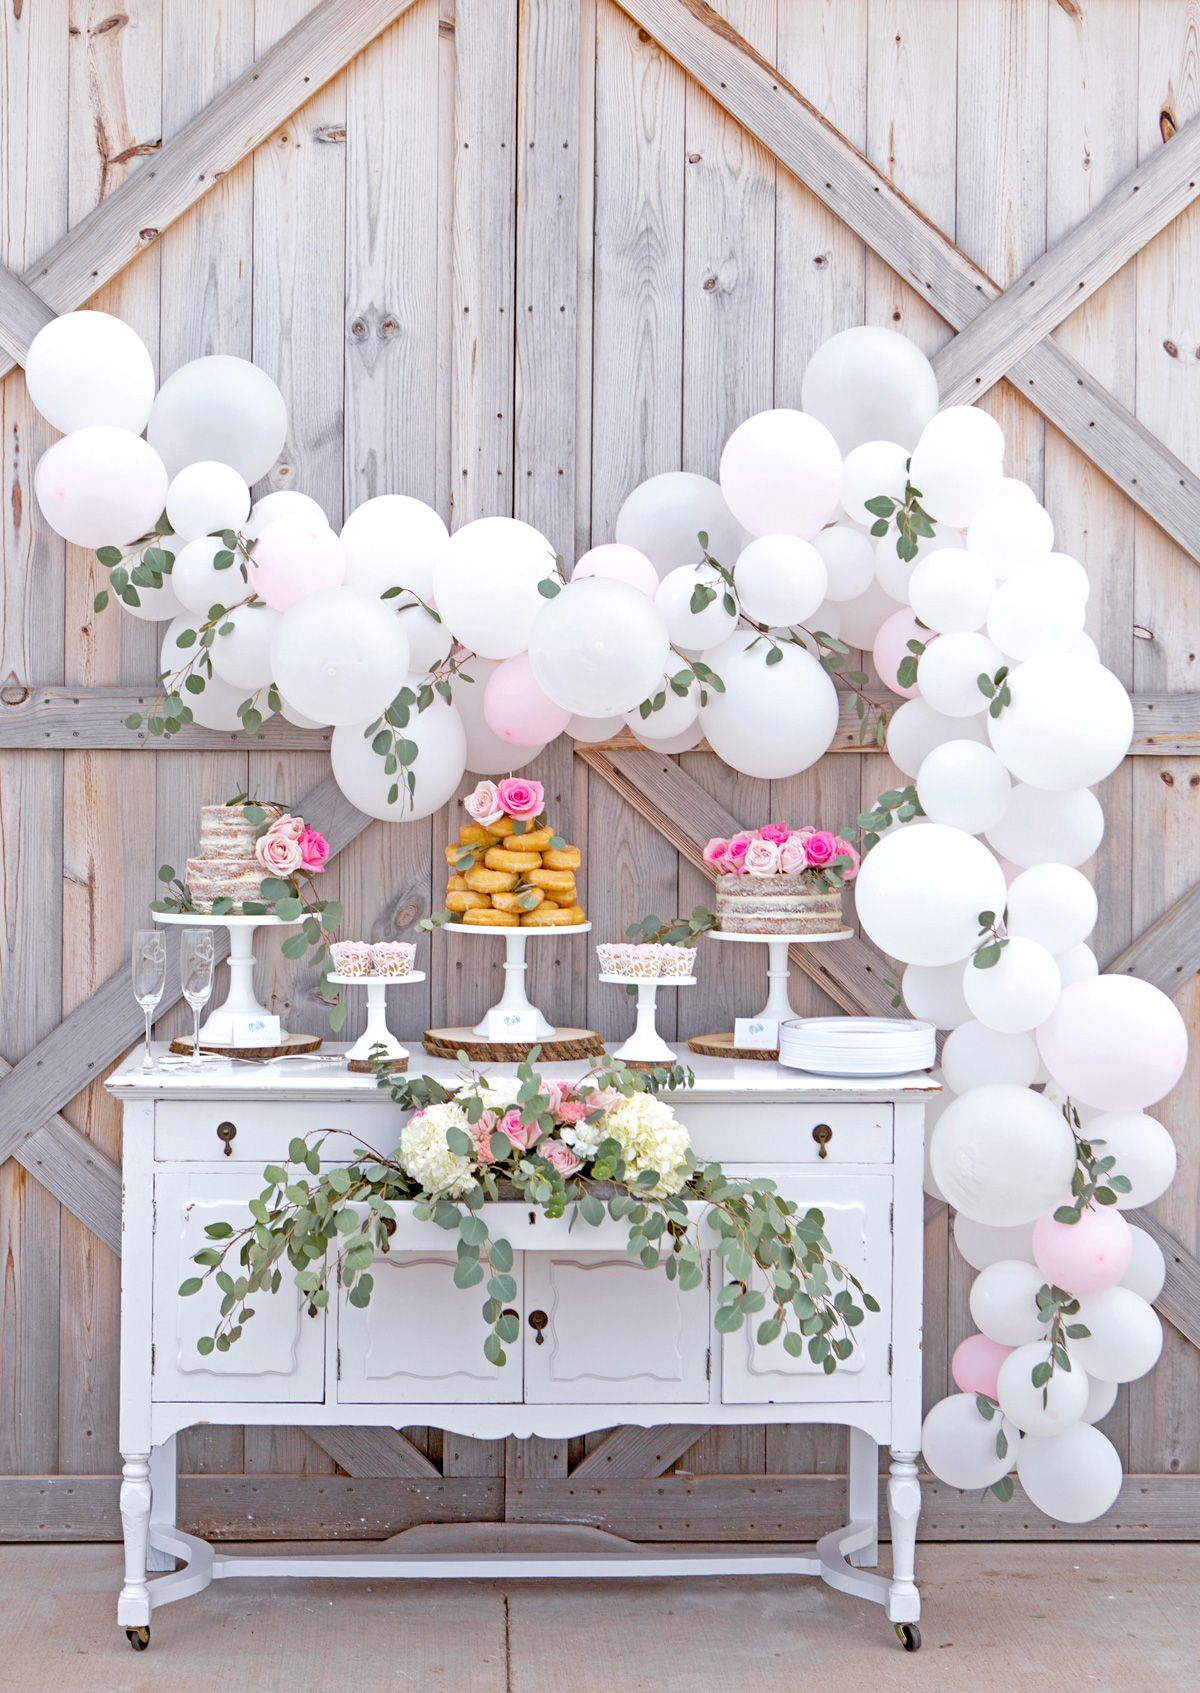 Gorgeous Rustic Barn Wedding Cake Table With Easy Diy Balloon Garland